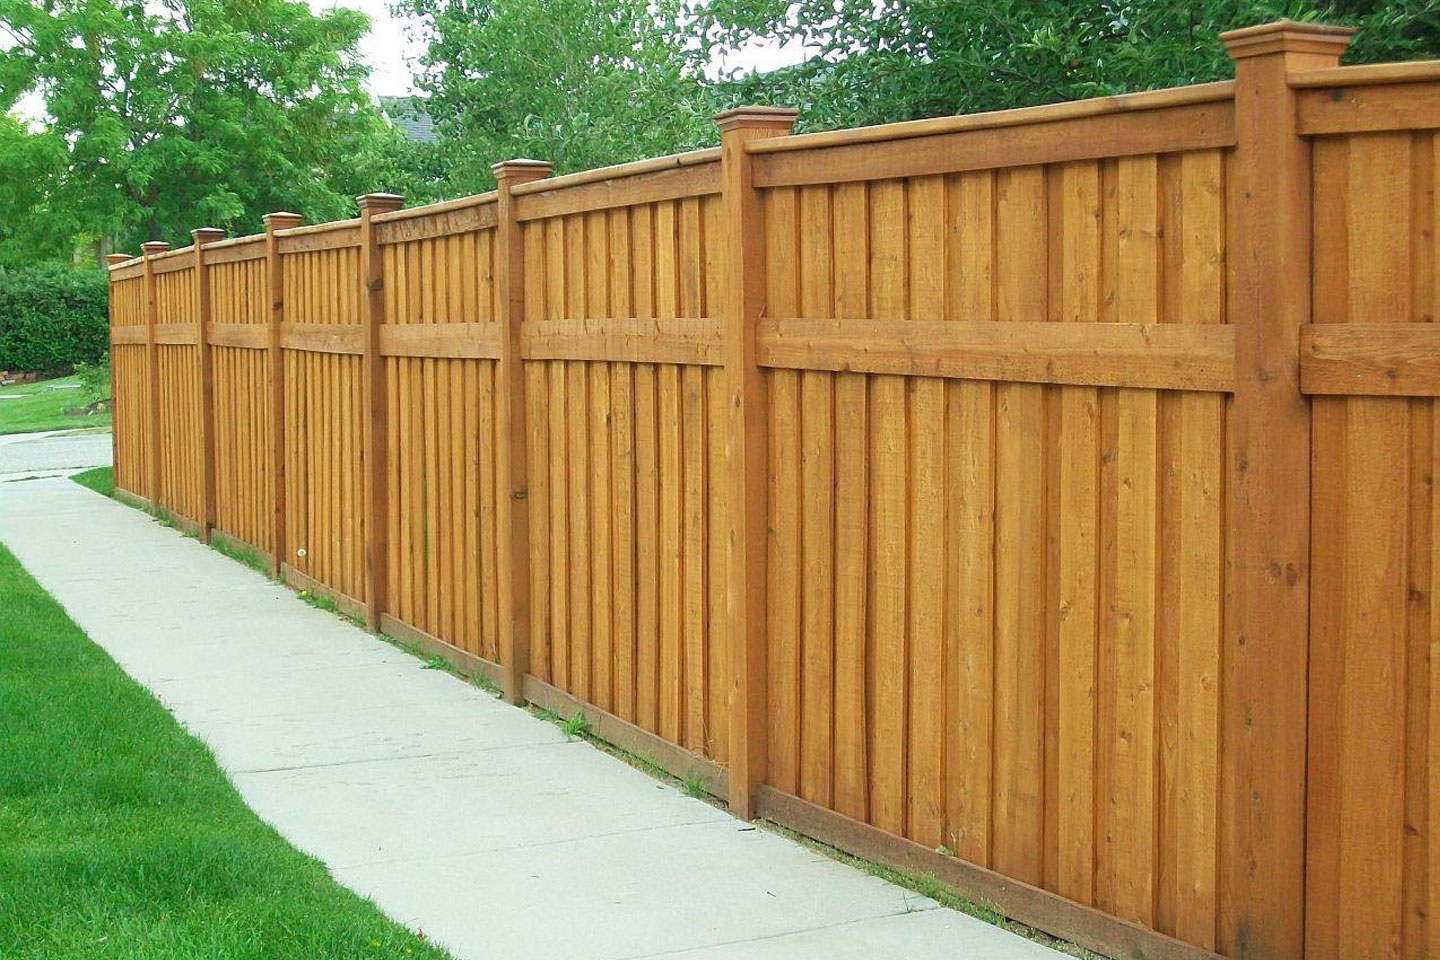 Privacy Fence Designs for Style & Seclusion | Freedonm ...